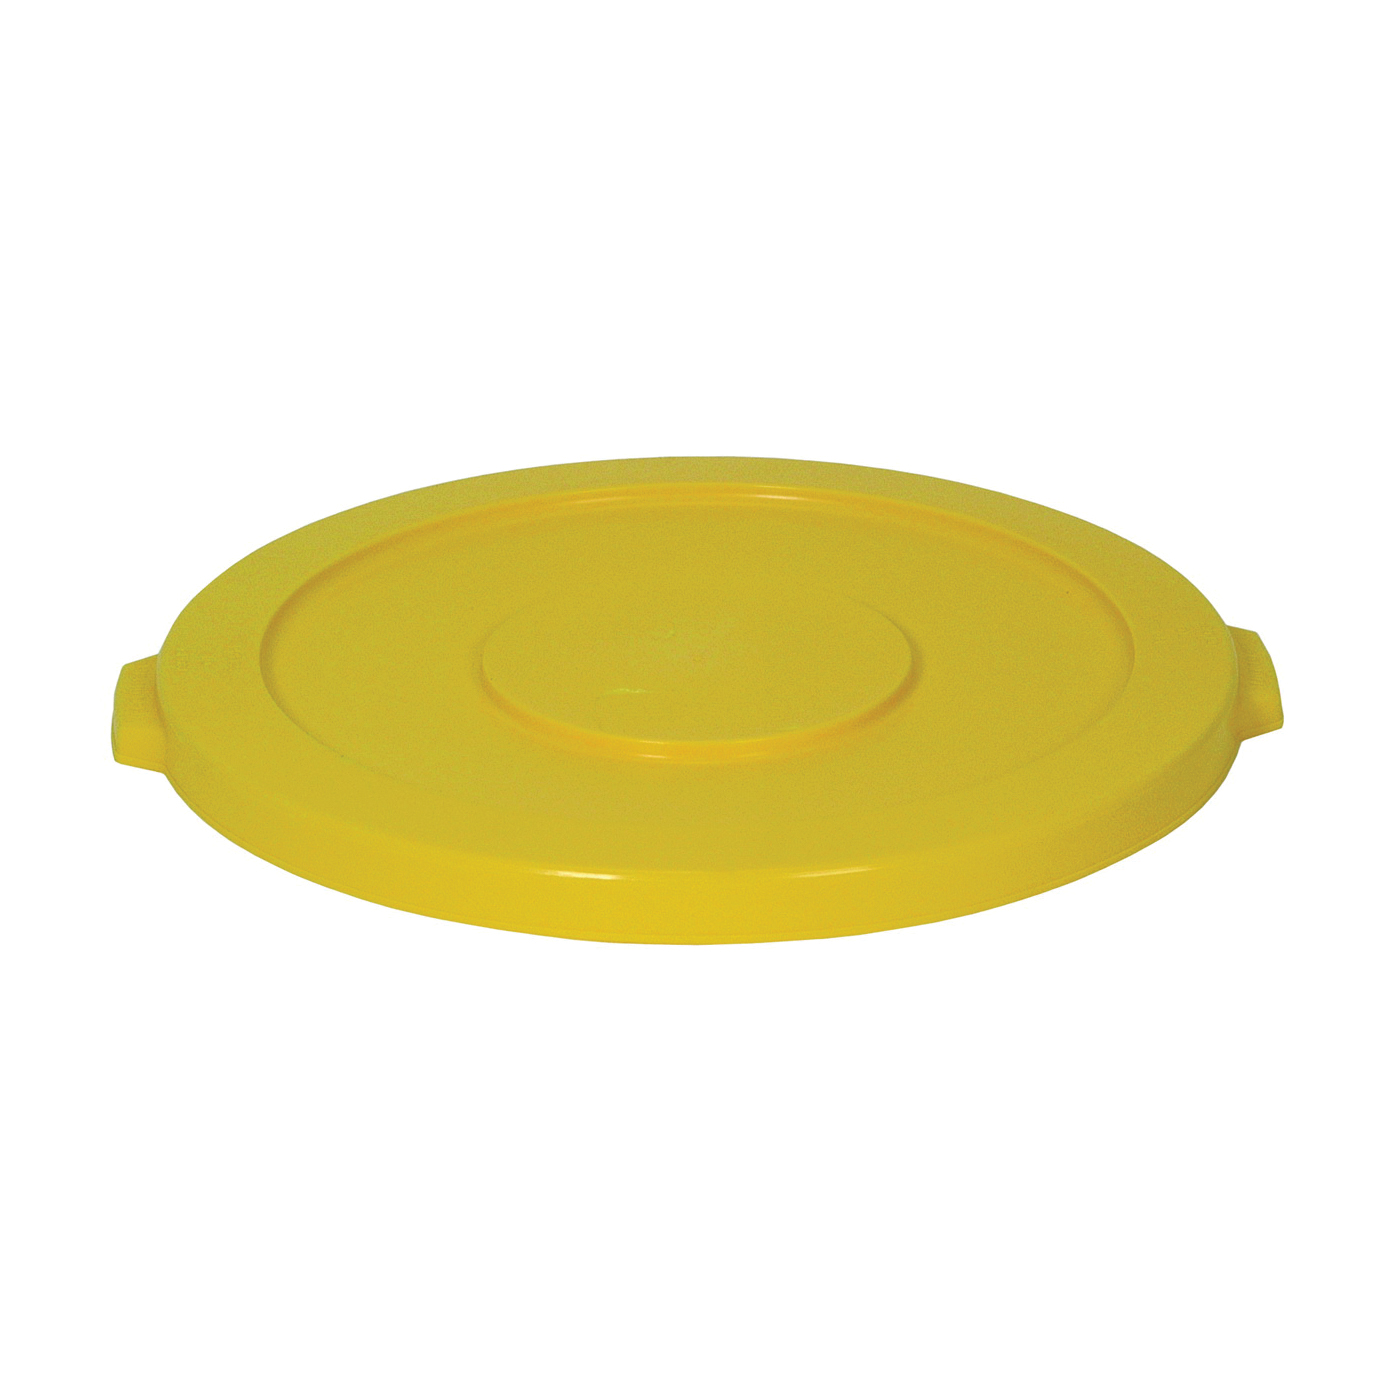 Picture of CONTINENTAL COMMERCIAL Huskee 3201YW Receptacle Lid, 32 gal, Plastic, Yellow, For: Huskee 3200 Container